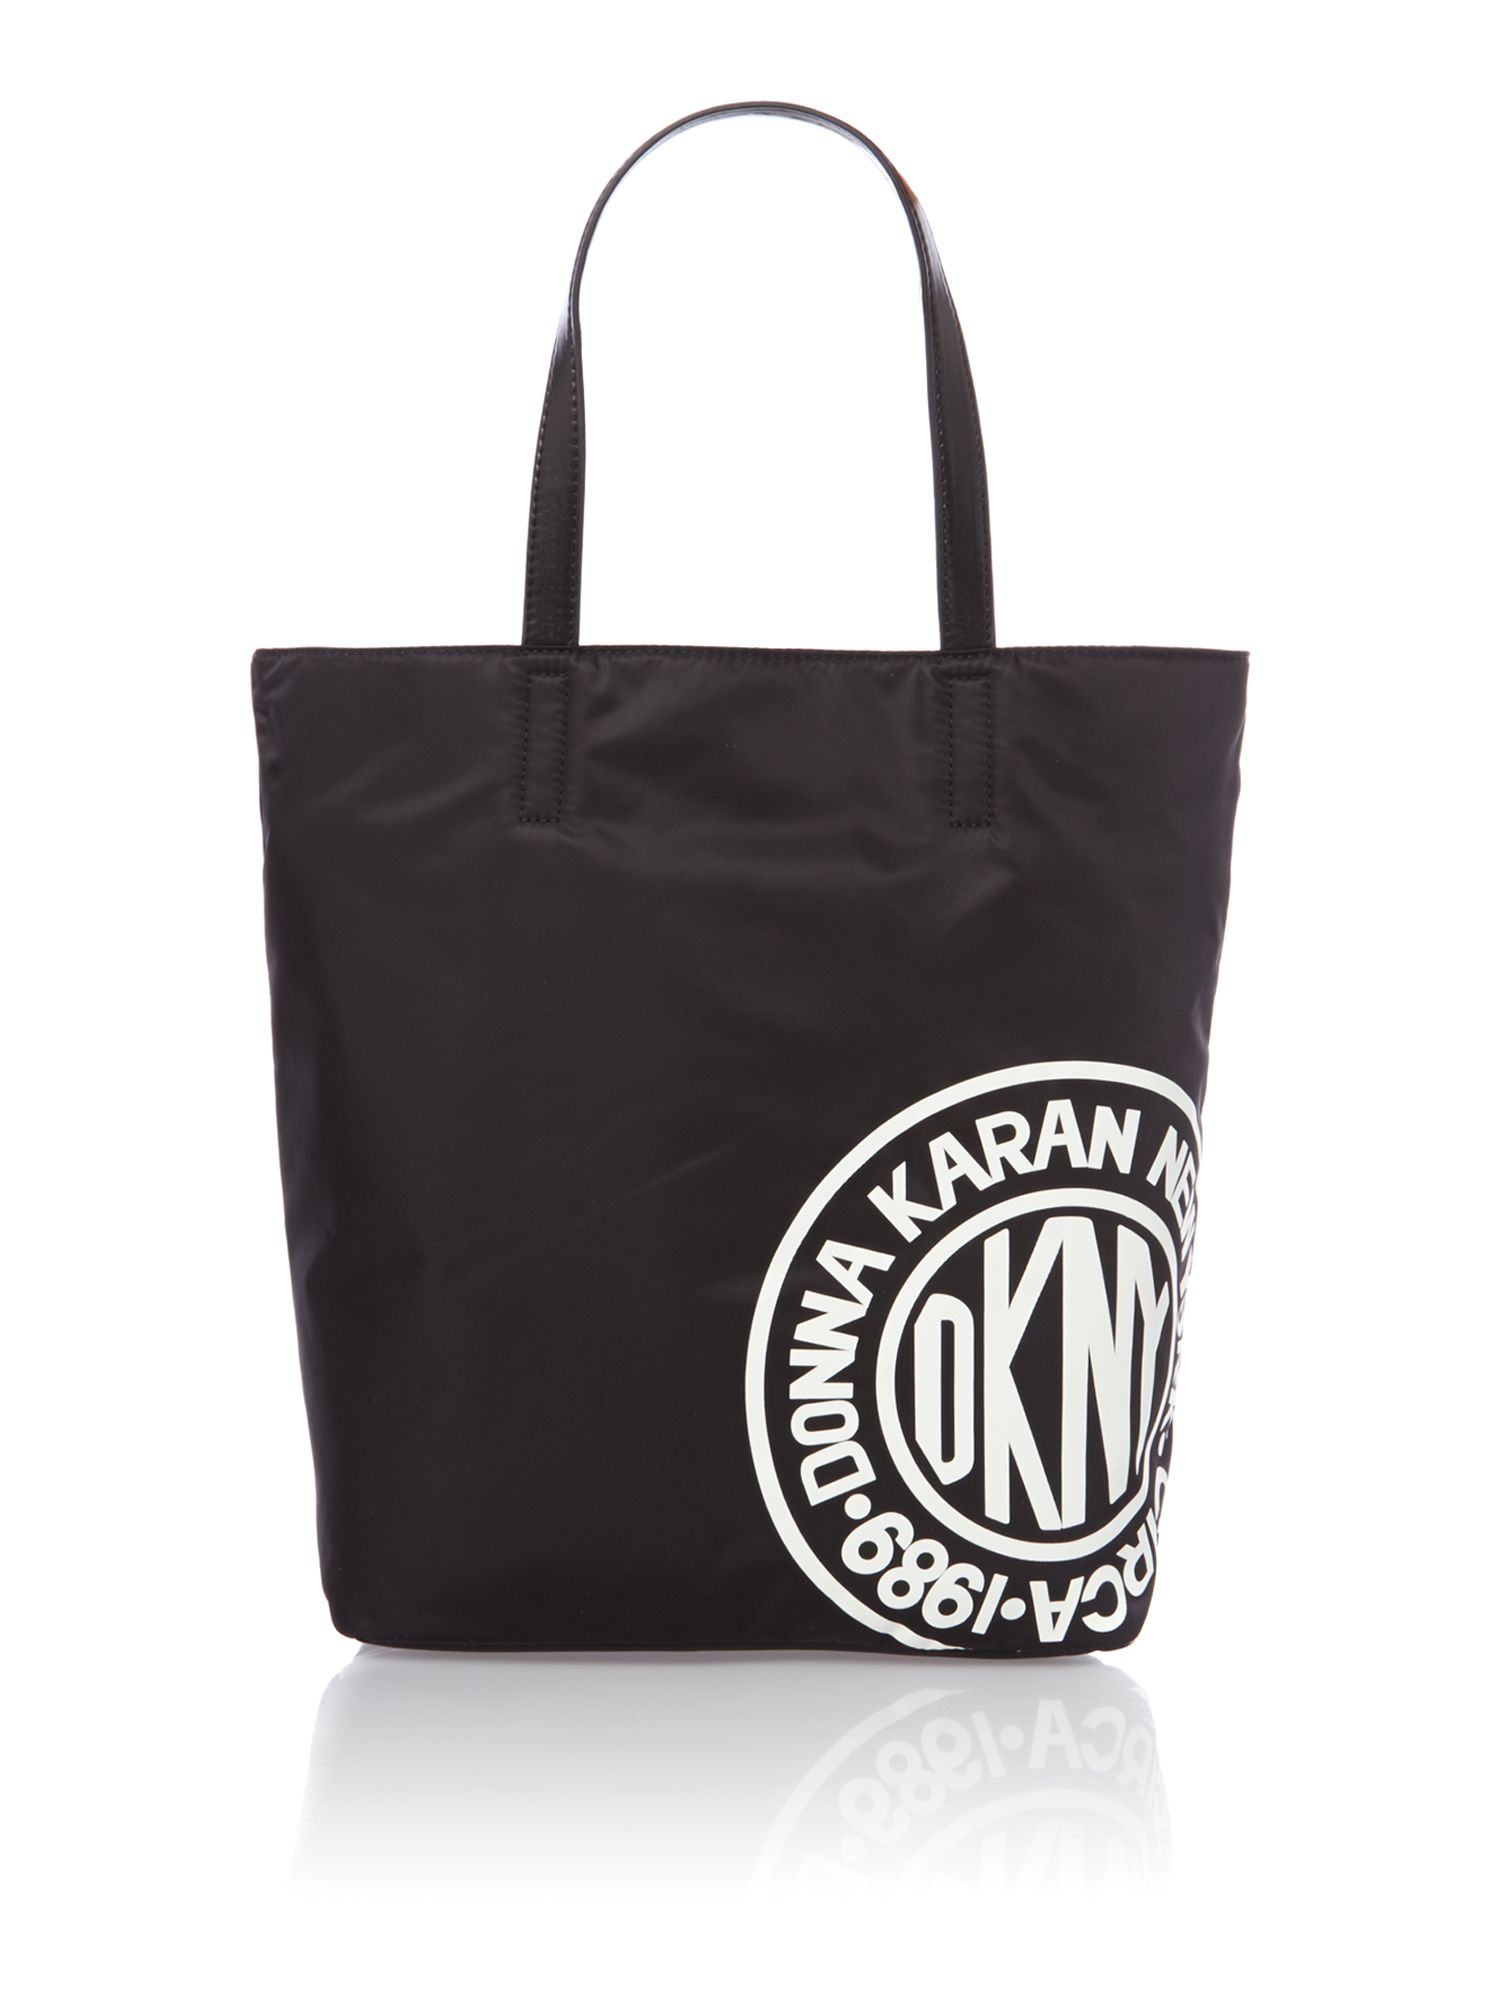 Nylon logo black tote bag